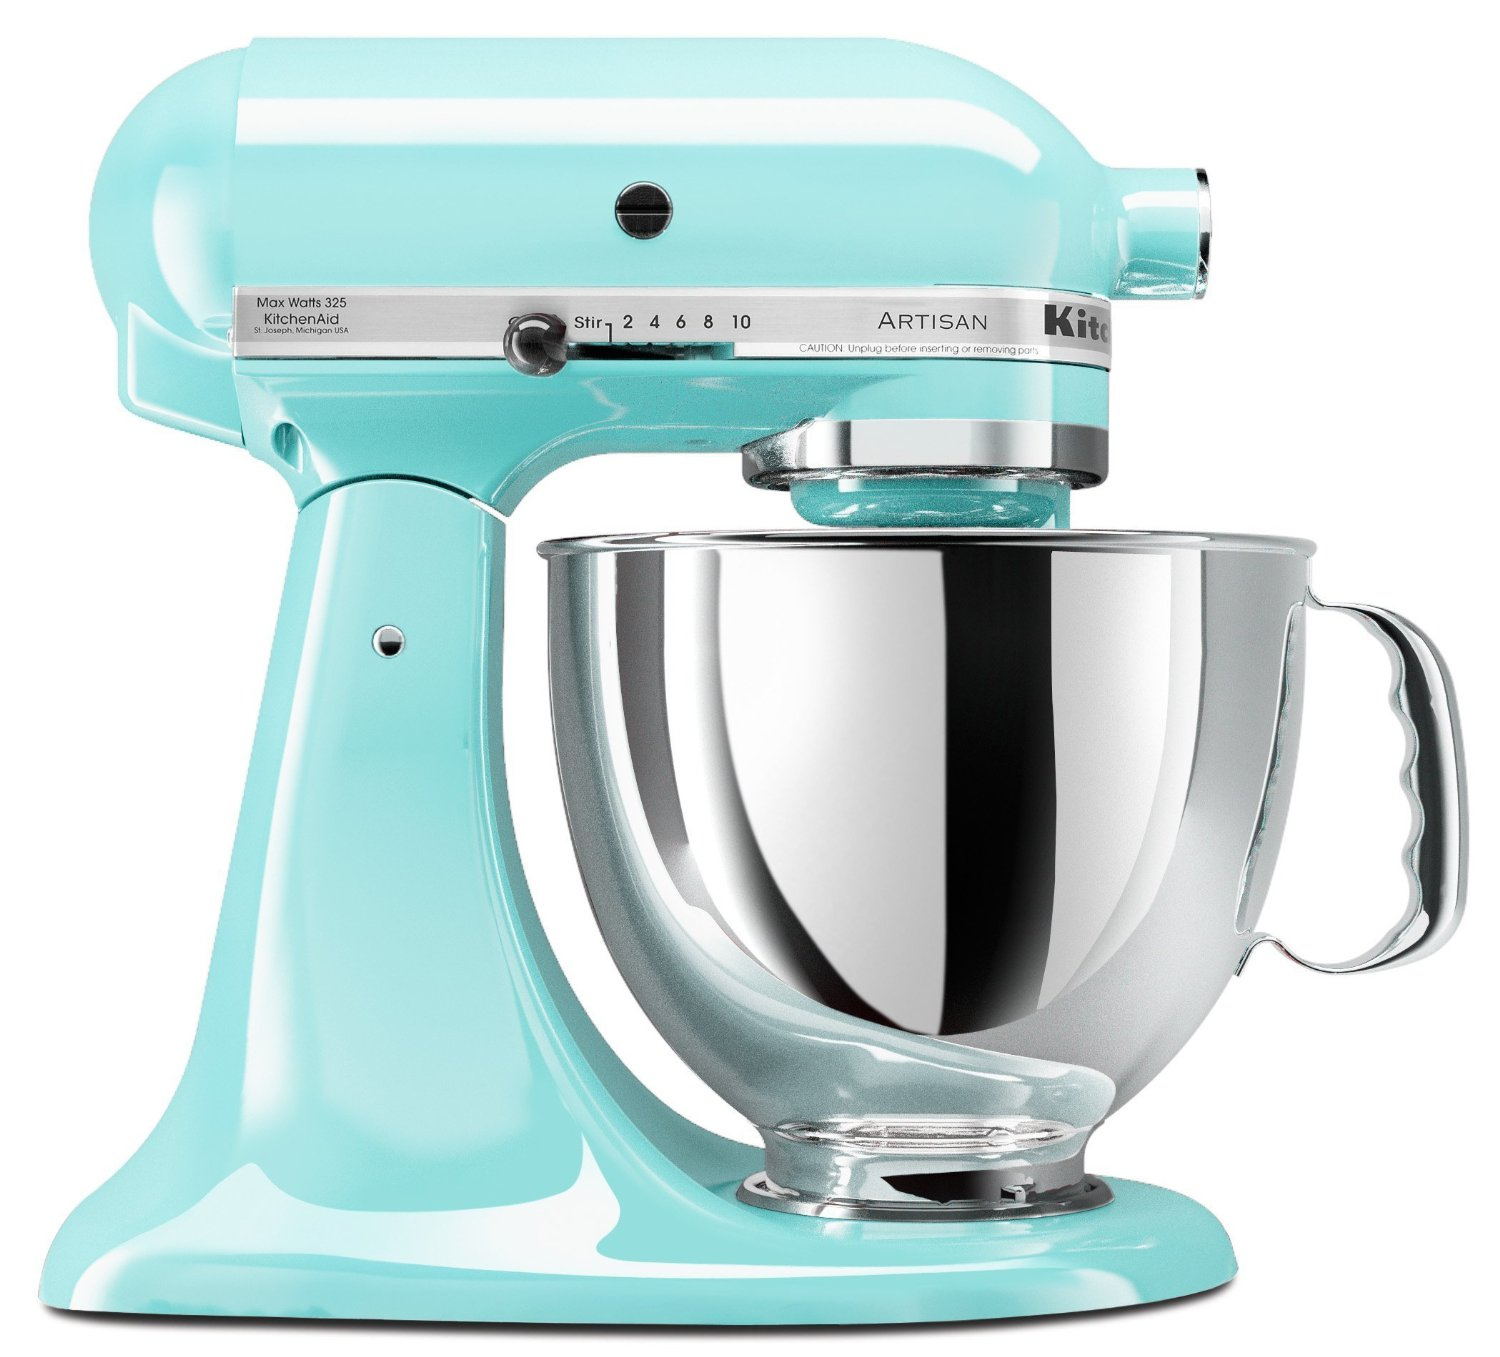 Magnificent Pink KitchenAid Stand Mixer 1500 x 1357 · 172 kB · jpeg